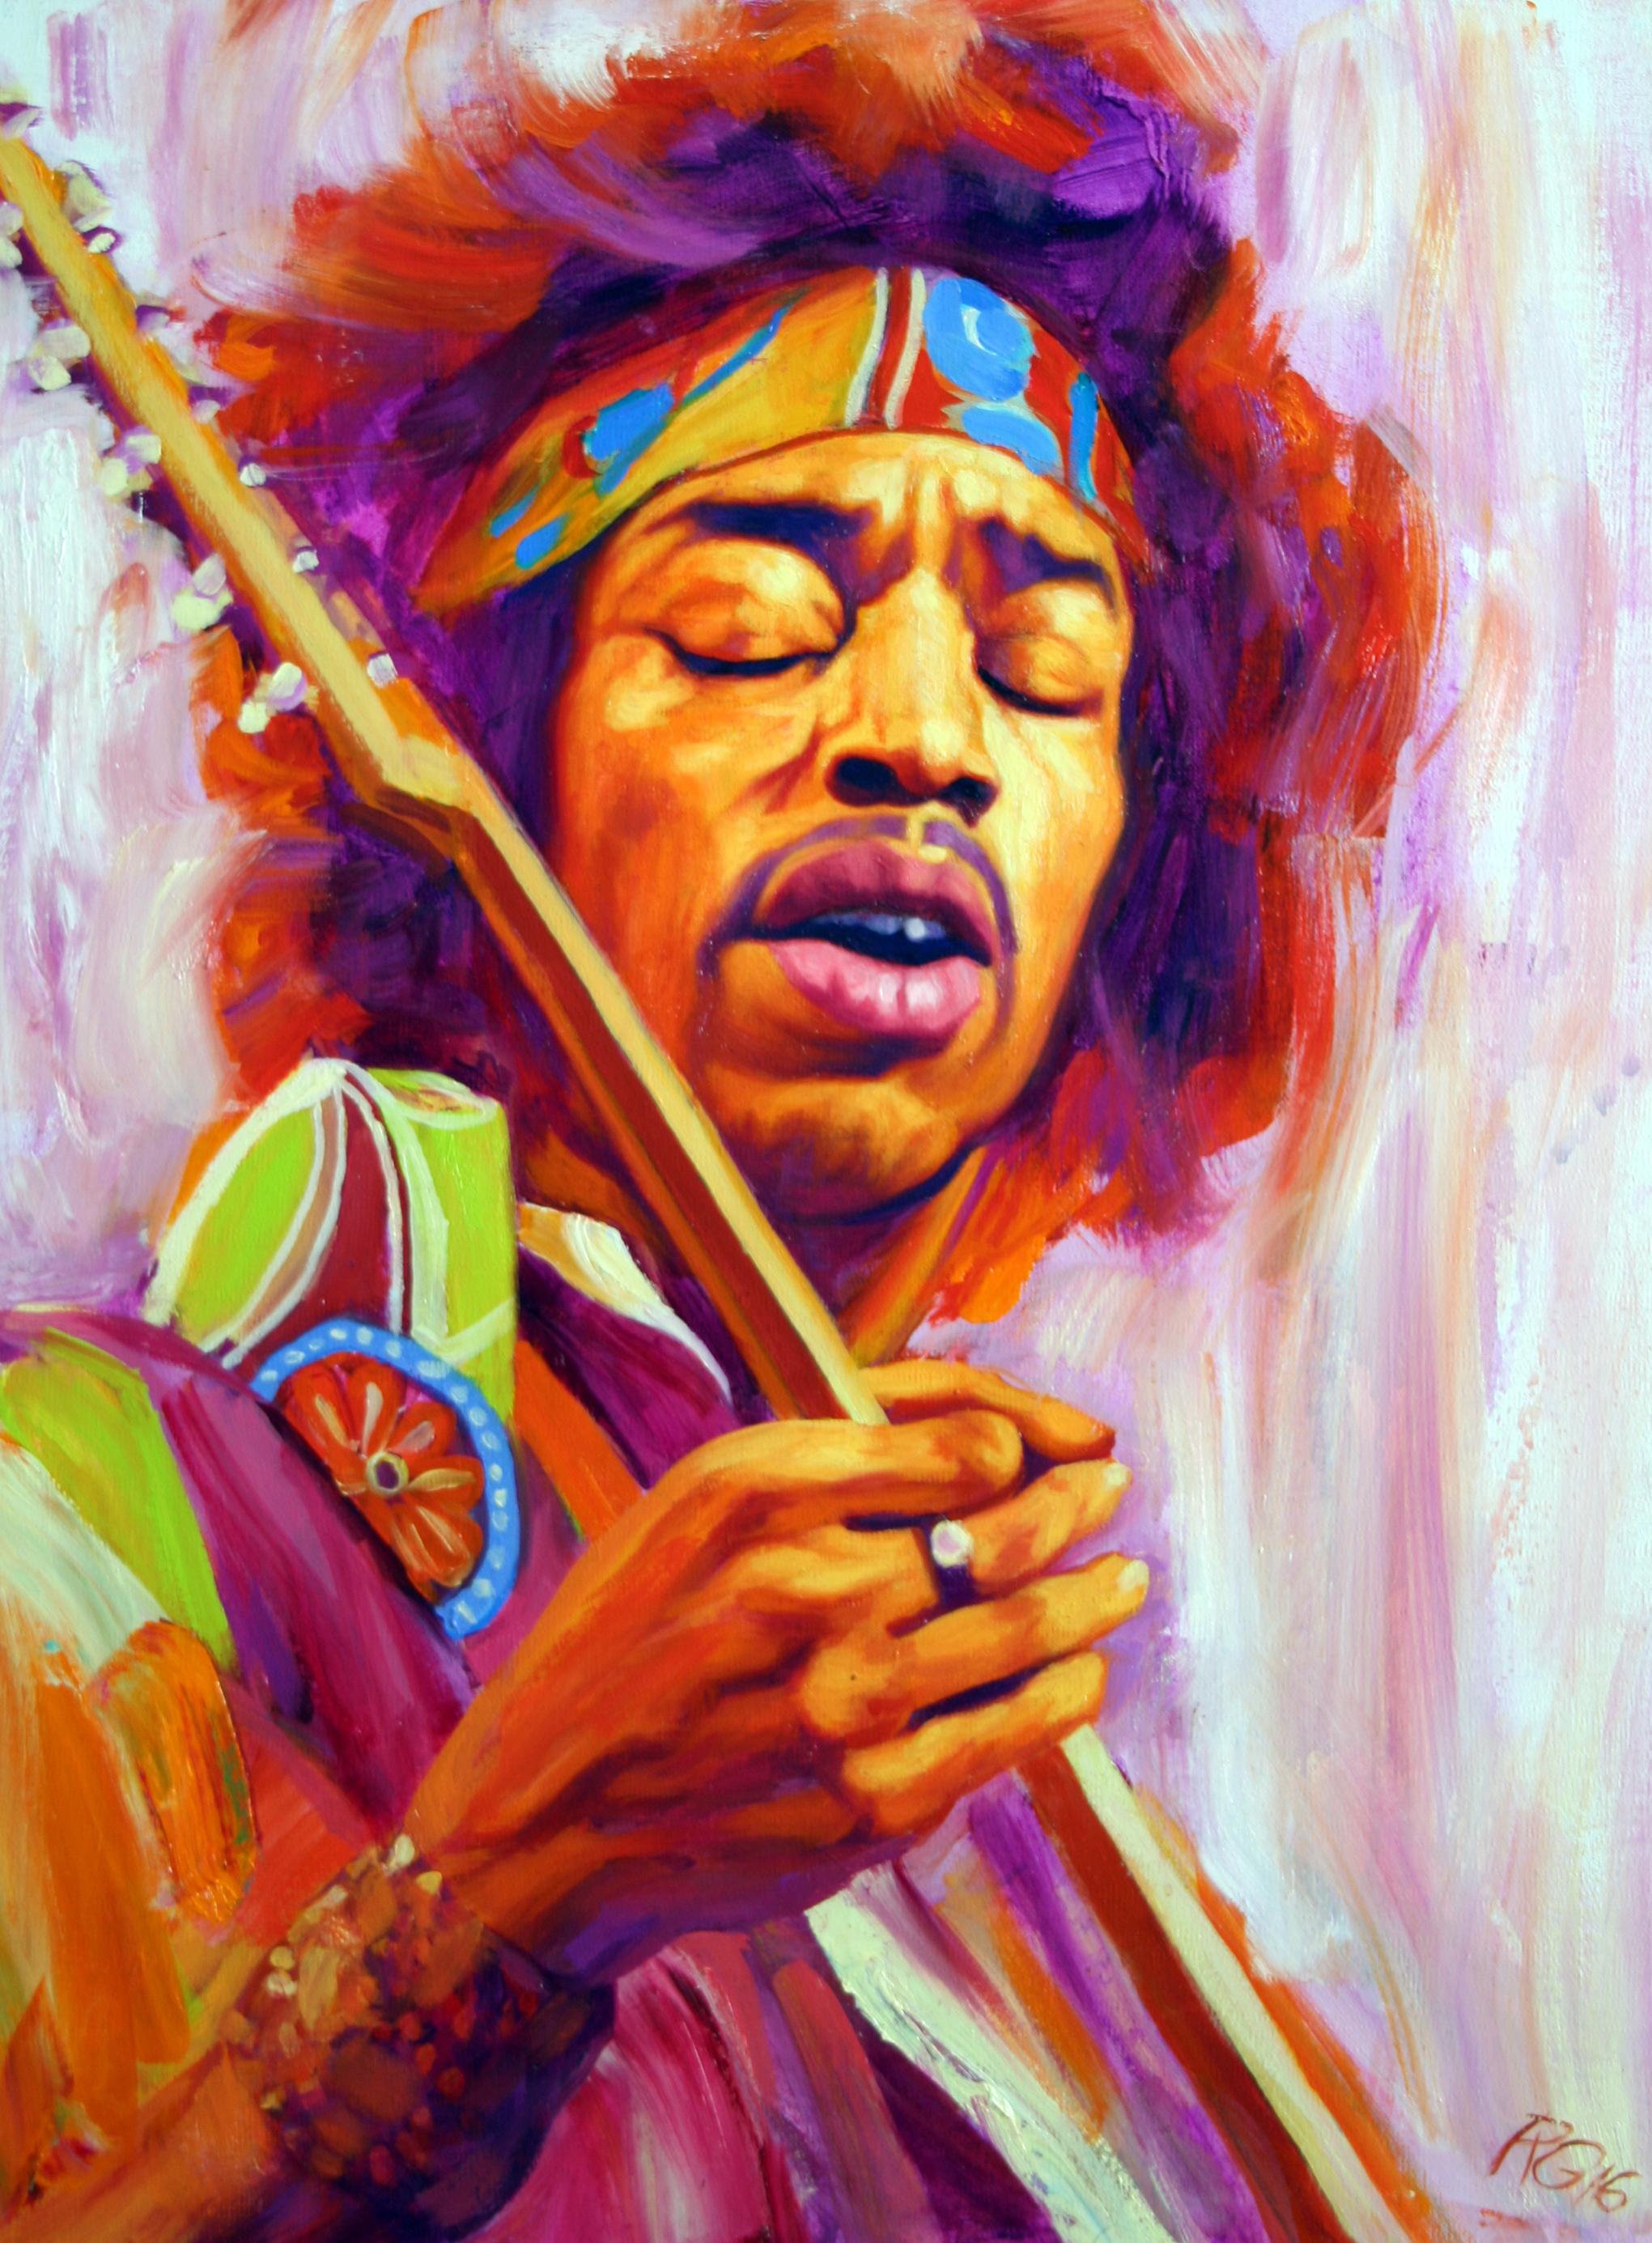 'Jimi, Voodoo Child'    Original Oil on Canvas.  Available as a Limited Edition Print on Canvas. Hand signed and numbered by the artist.